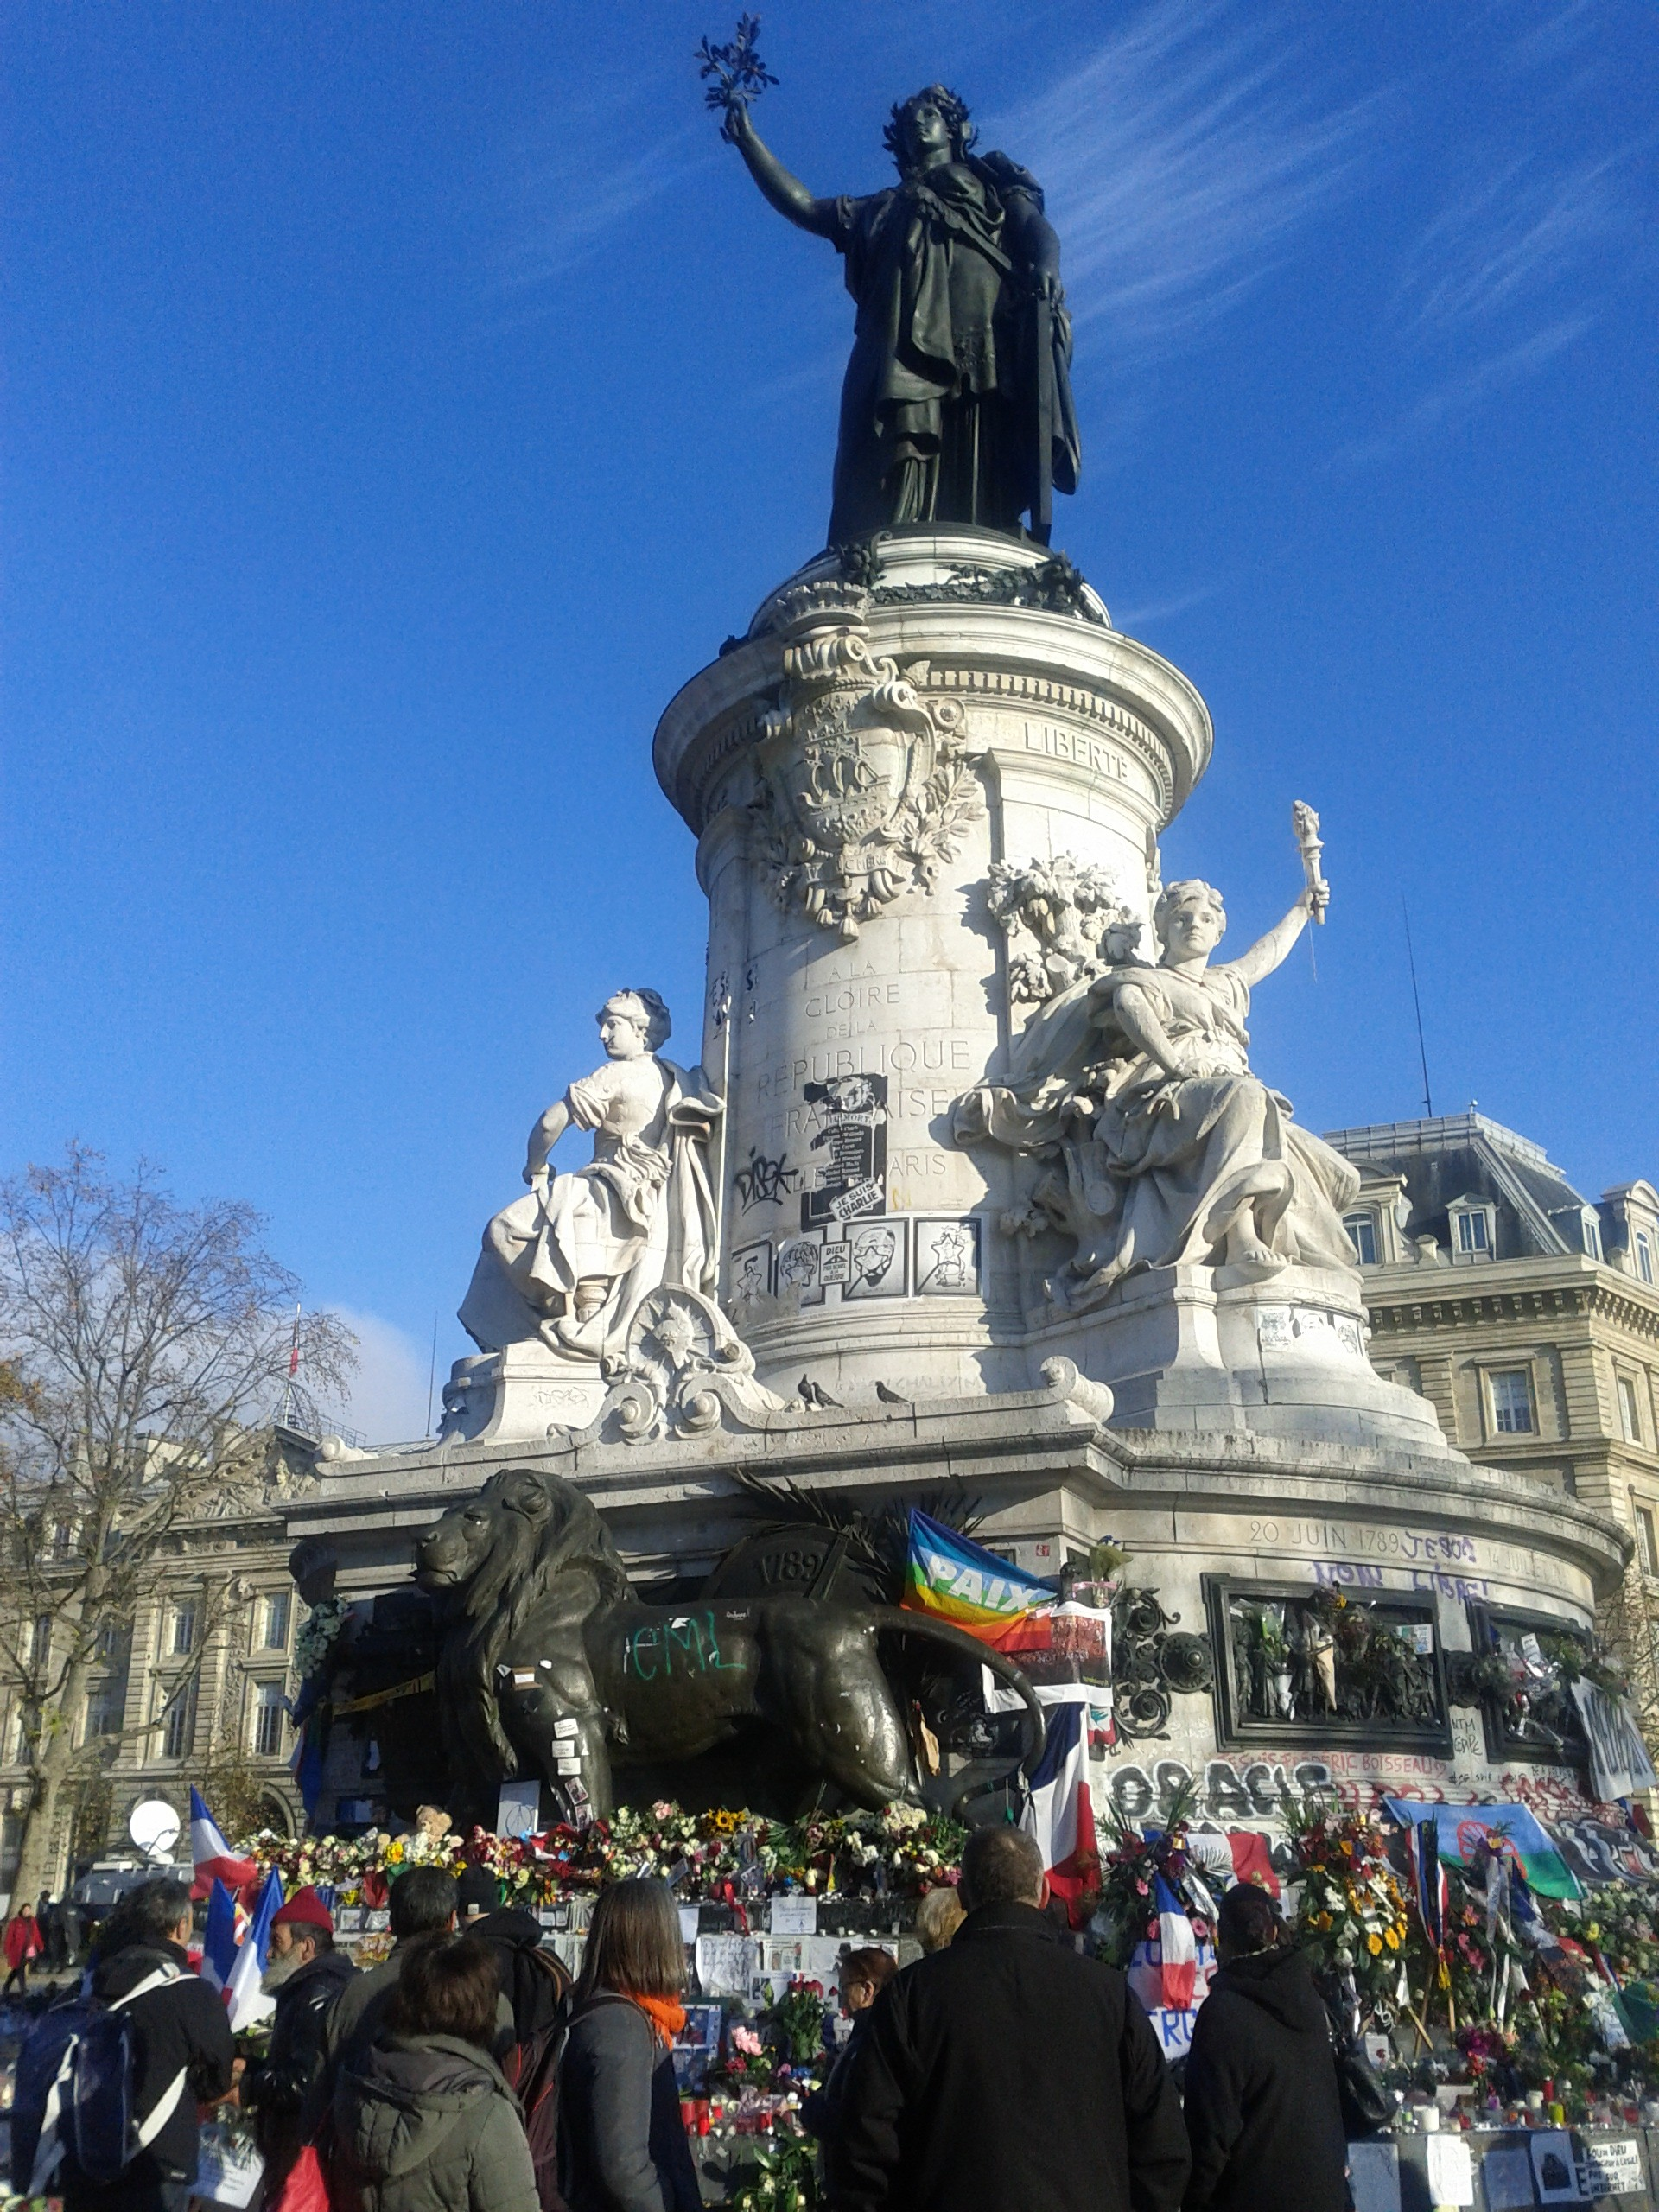 Place de la république 23 november 2015